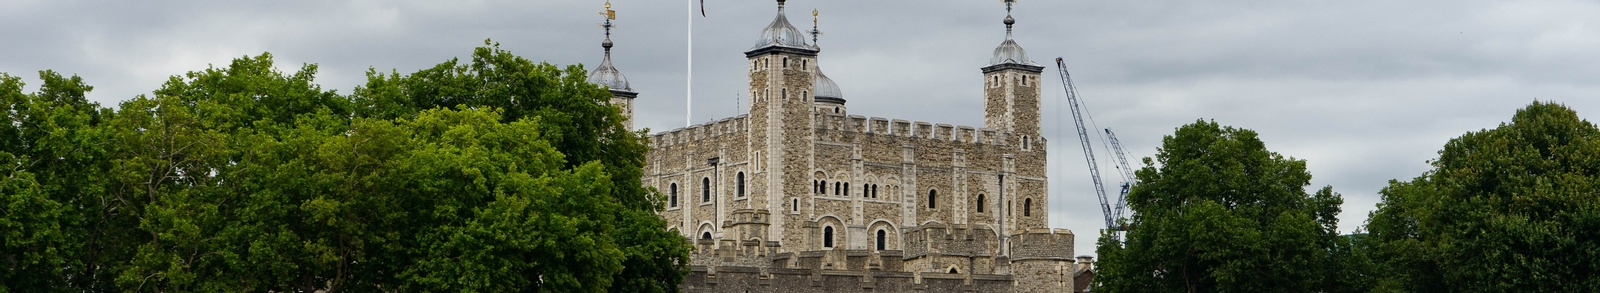 The Man in the Tower: How the Tower of London is tied to Merchant Taylors' banner